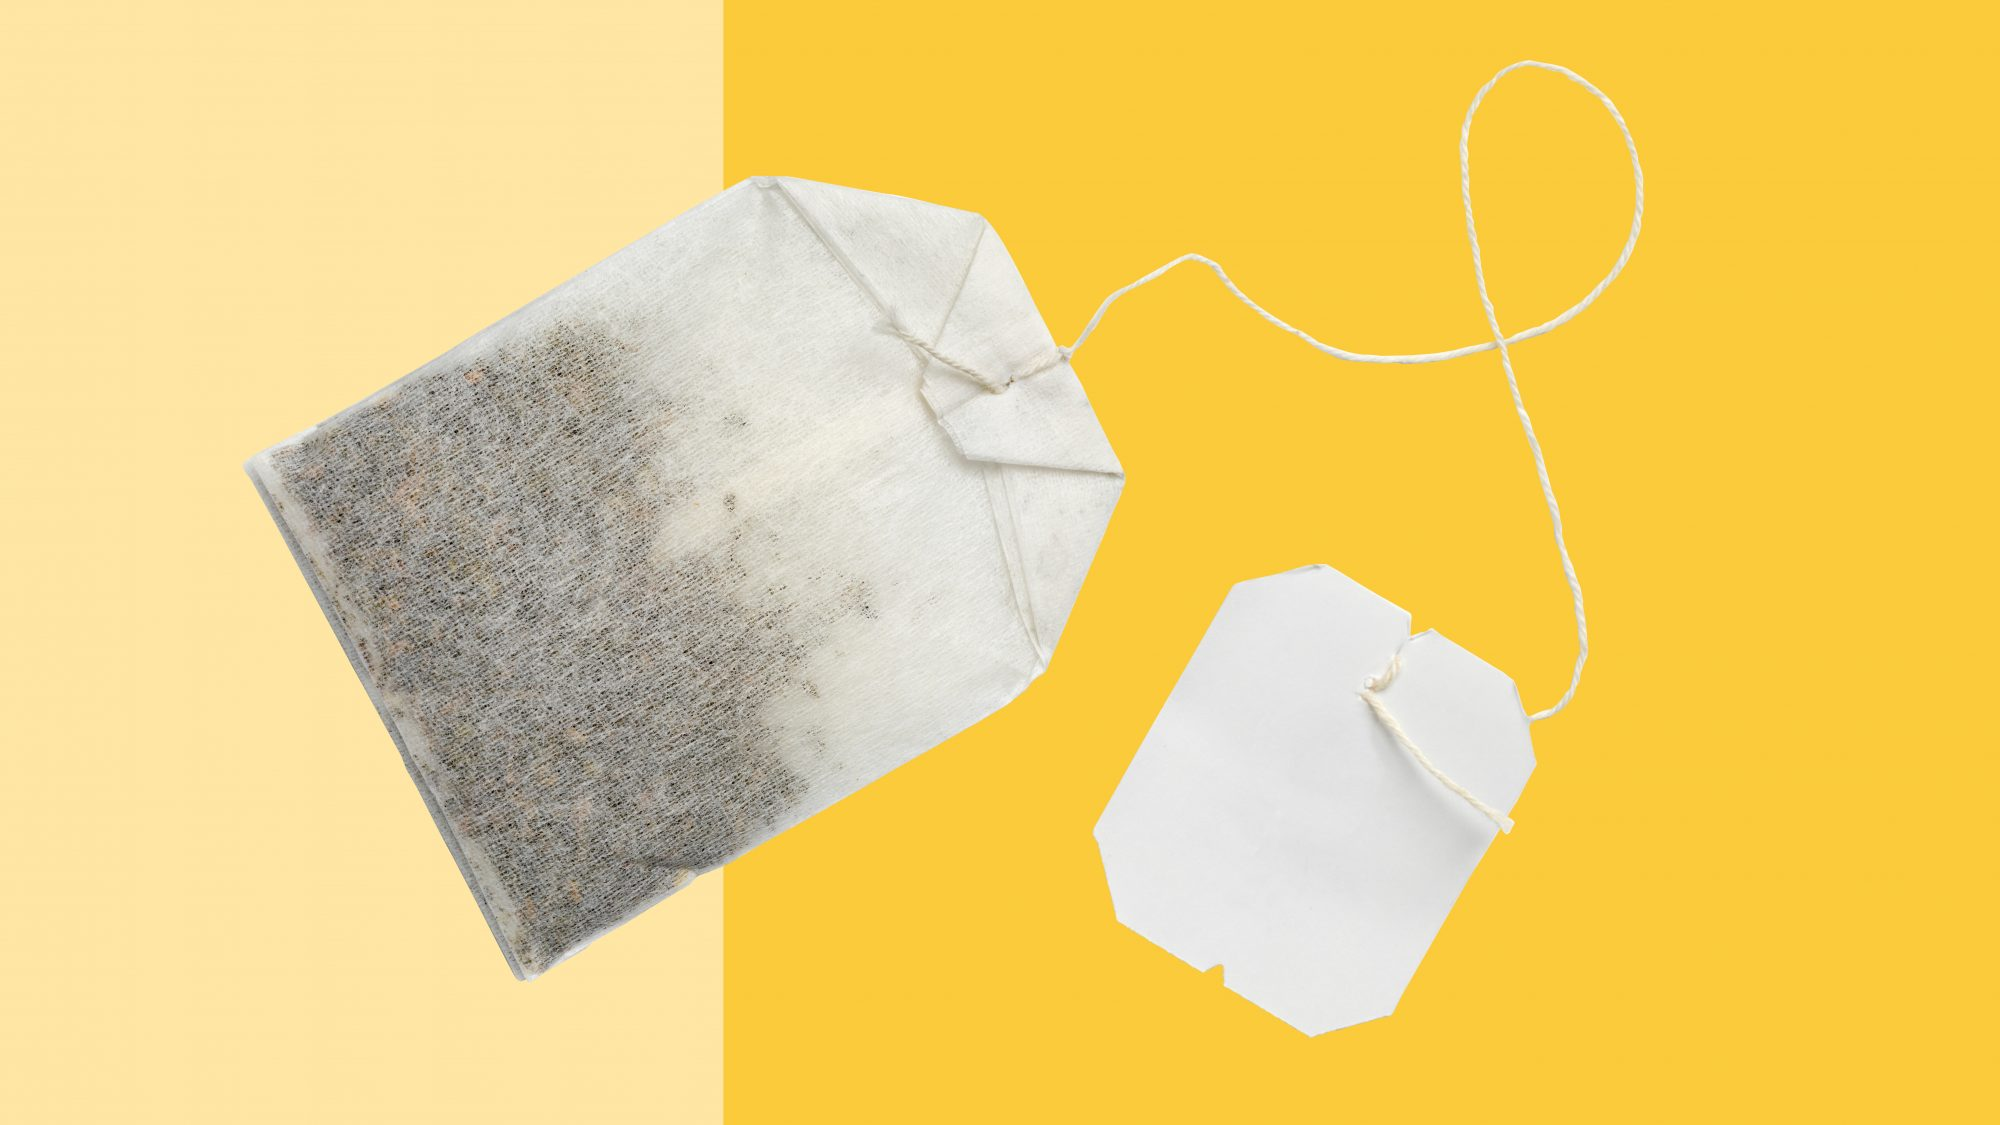 tea bag on yellow background